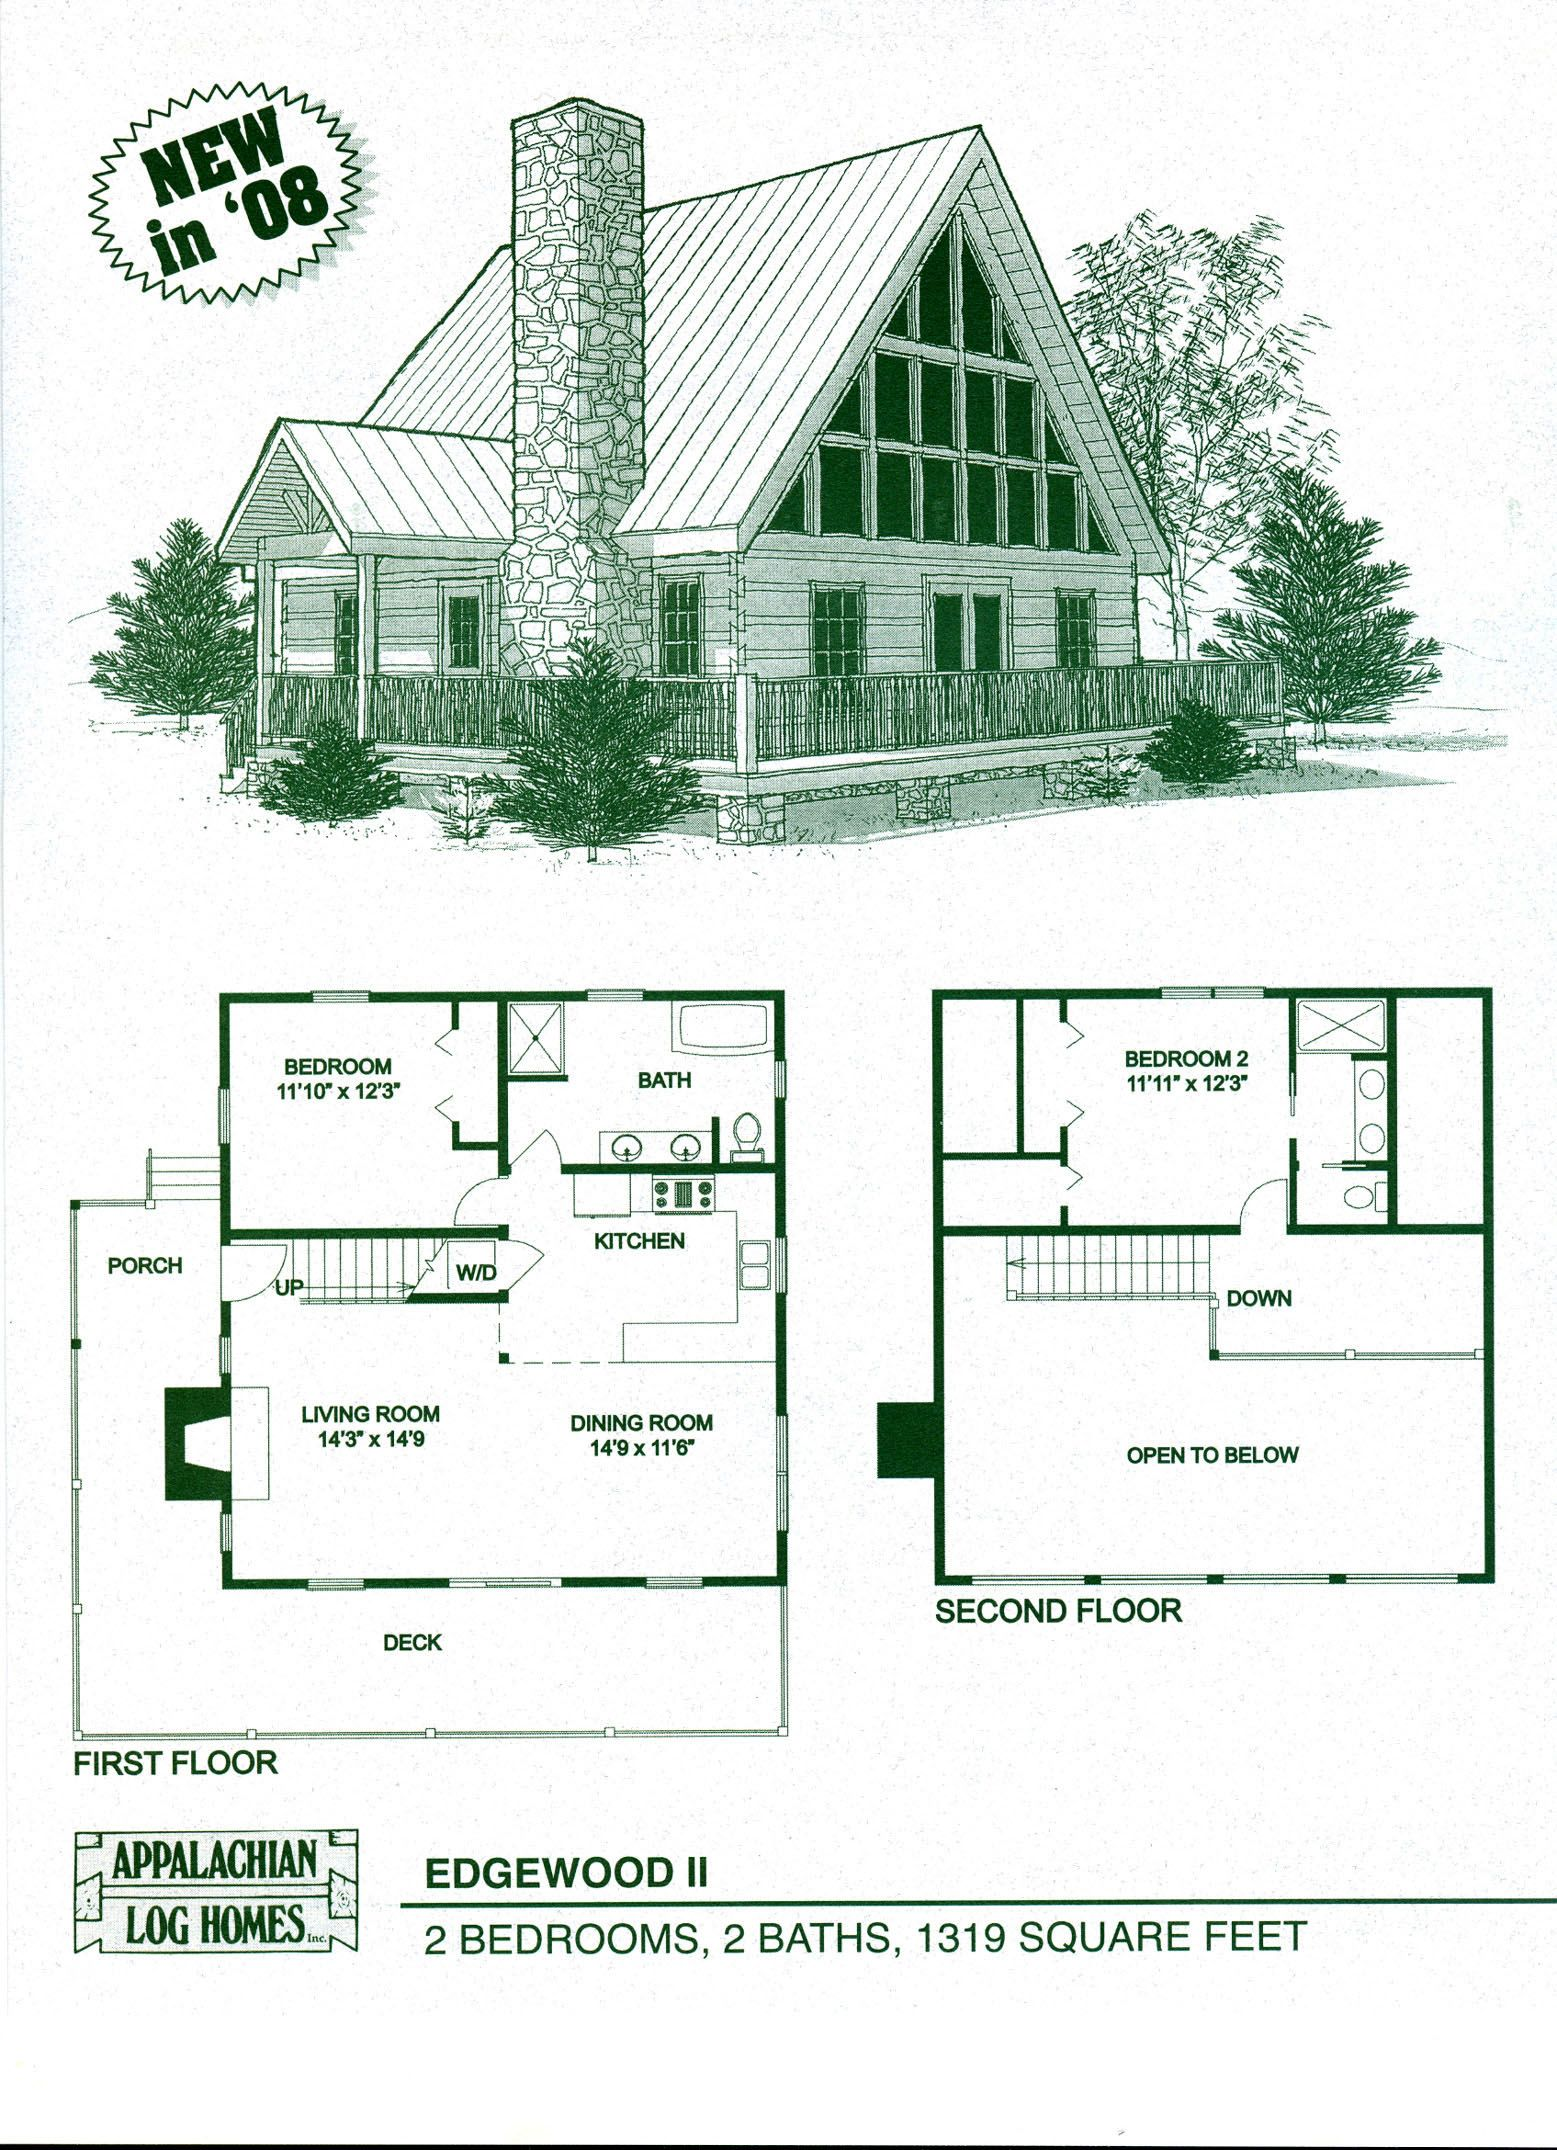 Log Home Floor Plans - Log Cabin Kits - Appalachian Log Homes | next ...